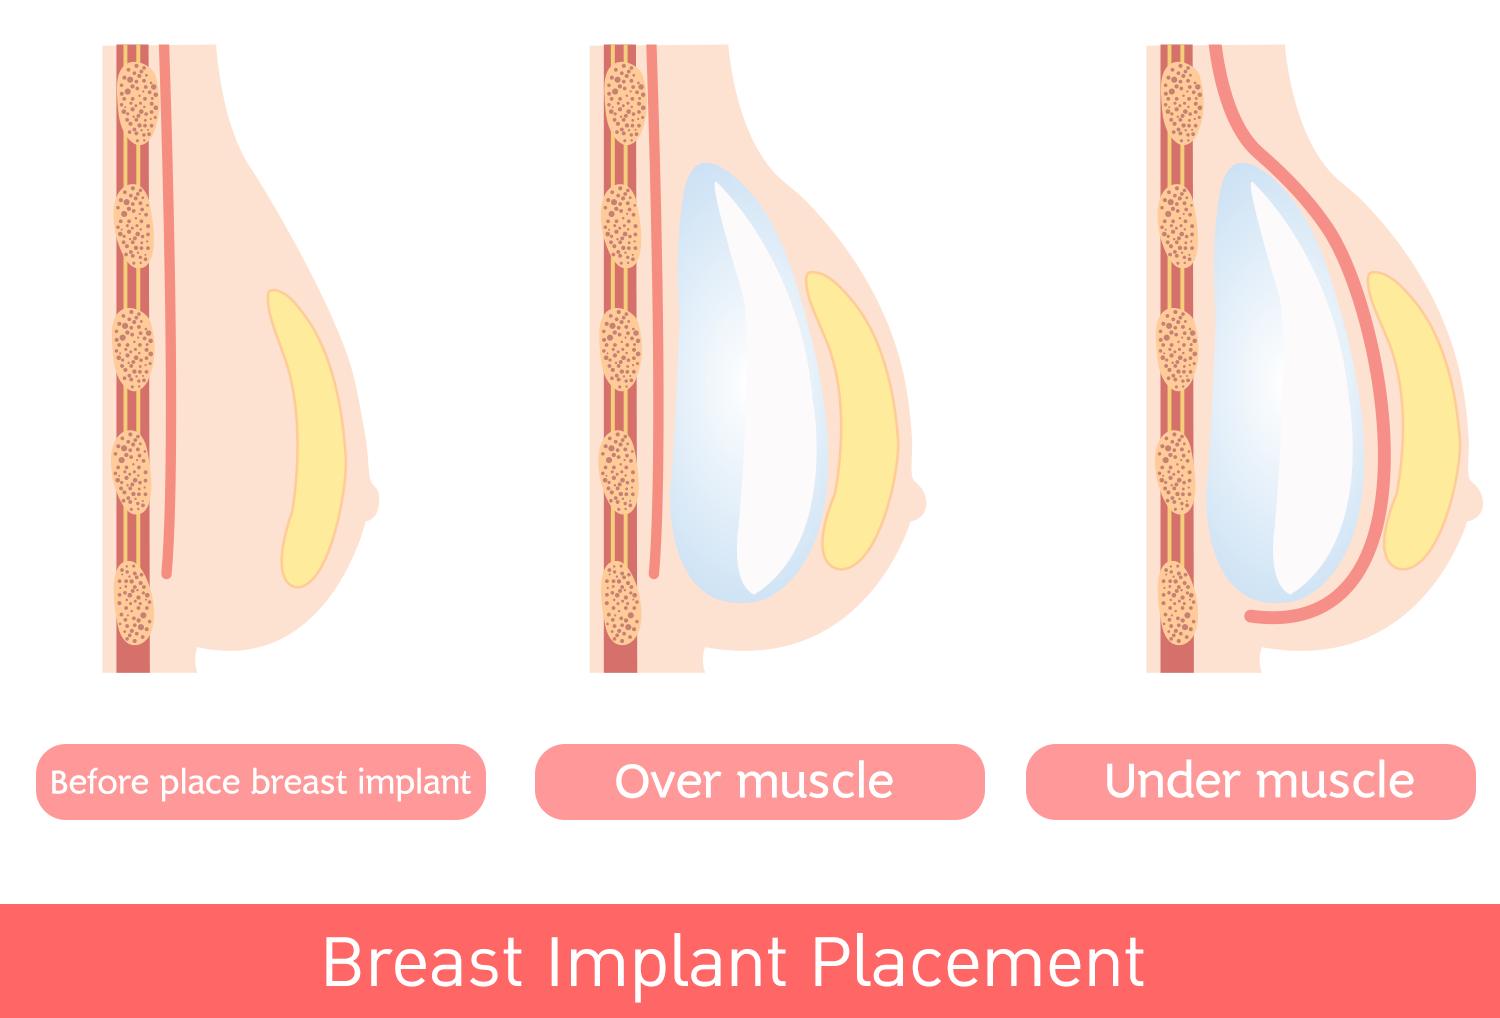 Breast Incision: Inframammary incision or under breast, Transaxillary and Periareolar